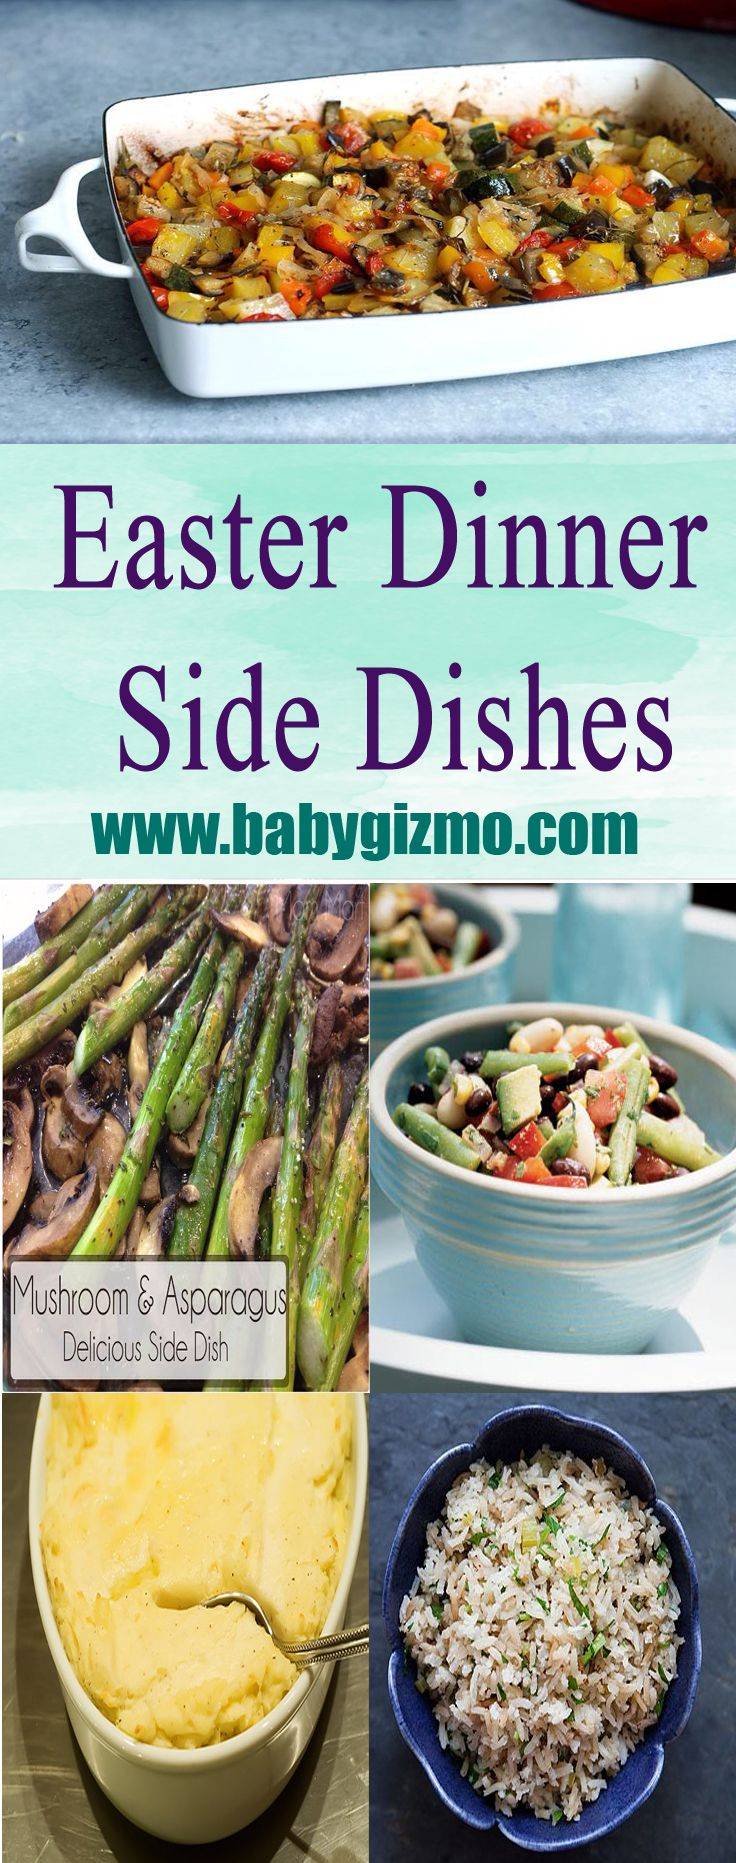 Easter dinner side dishes that are sure to be a hit with everyone at the table! #EasterDinner #BabyGizmo